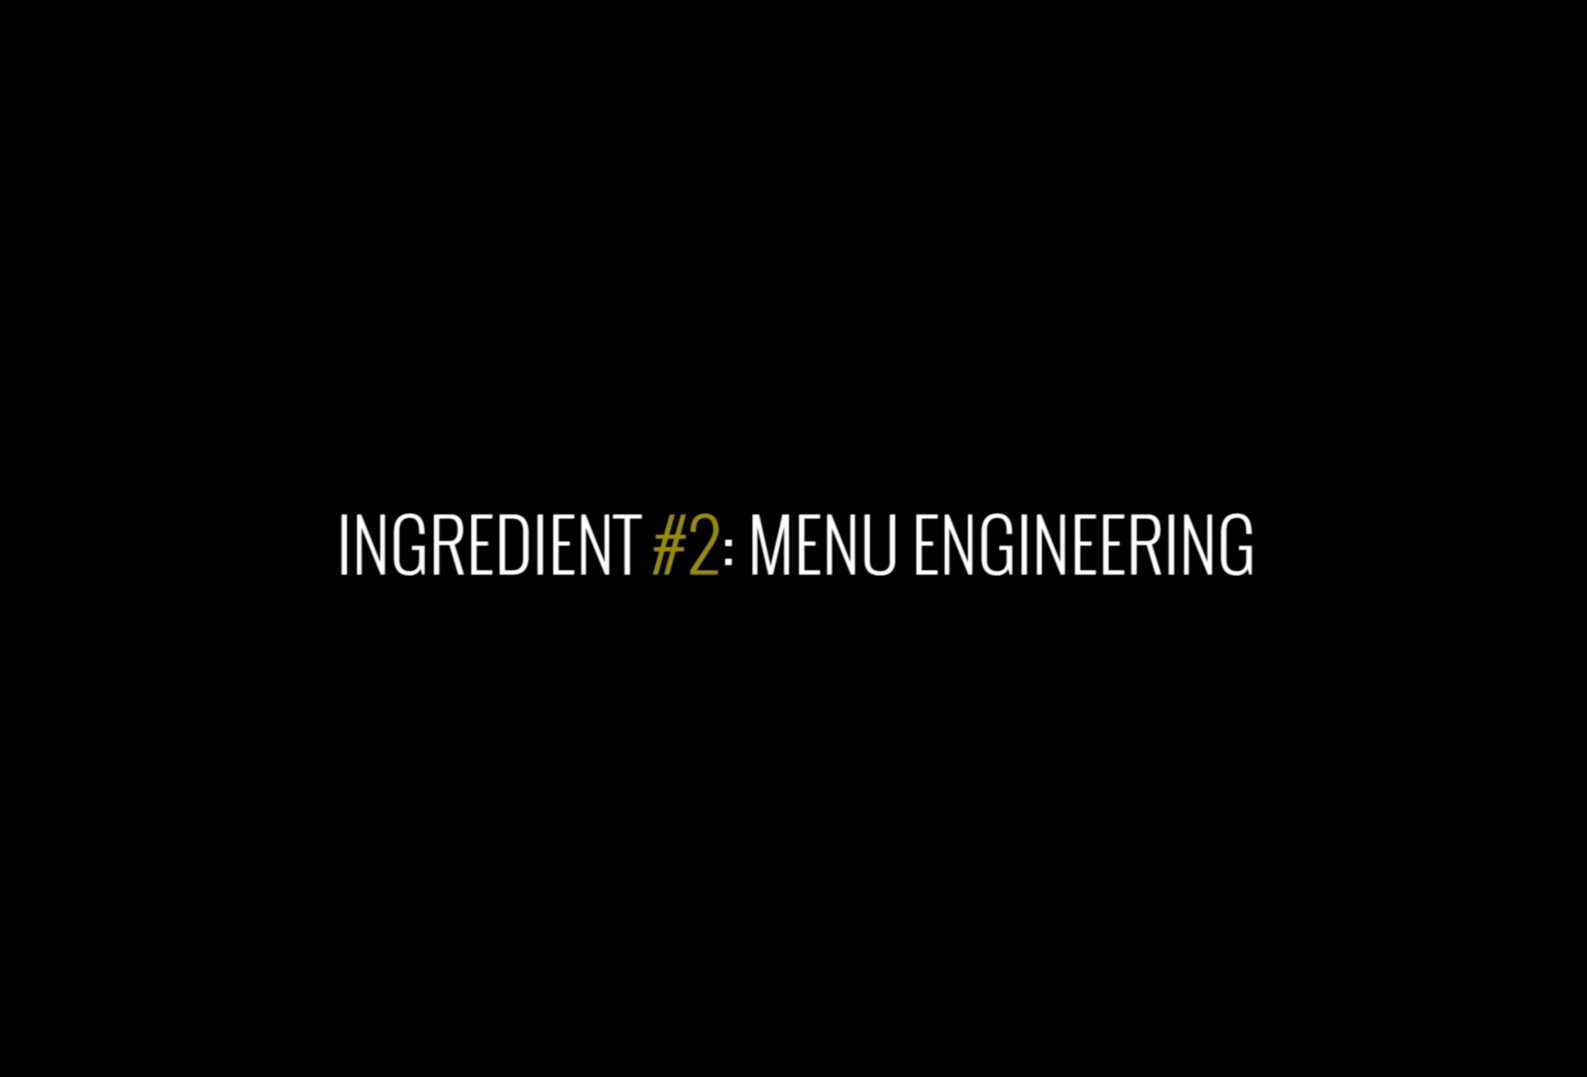 Ingredient# 2 Menu Engineering